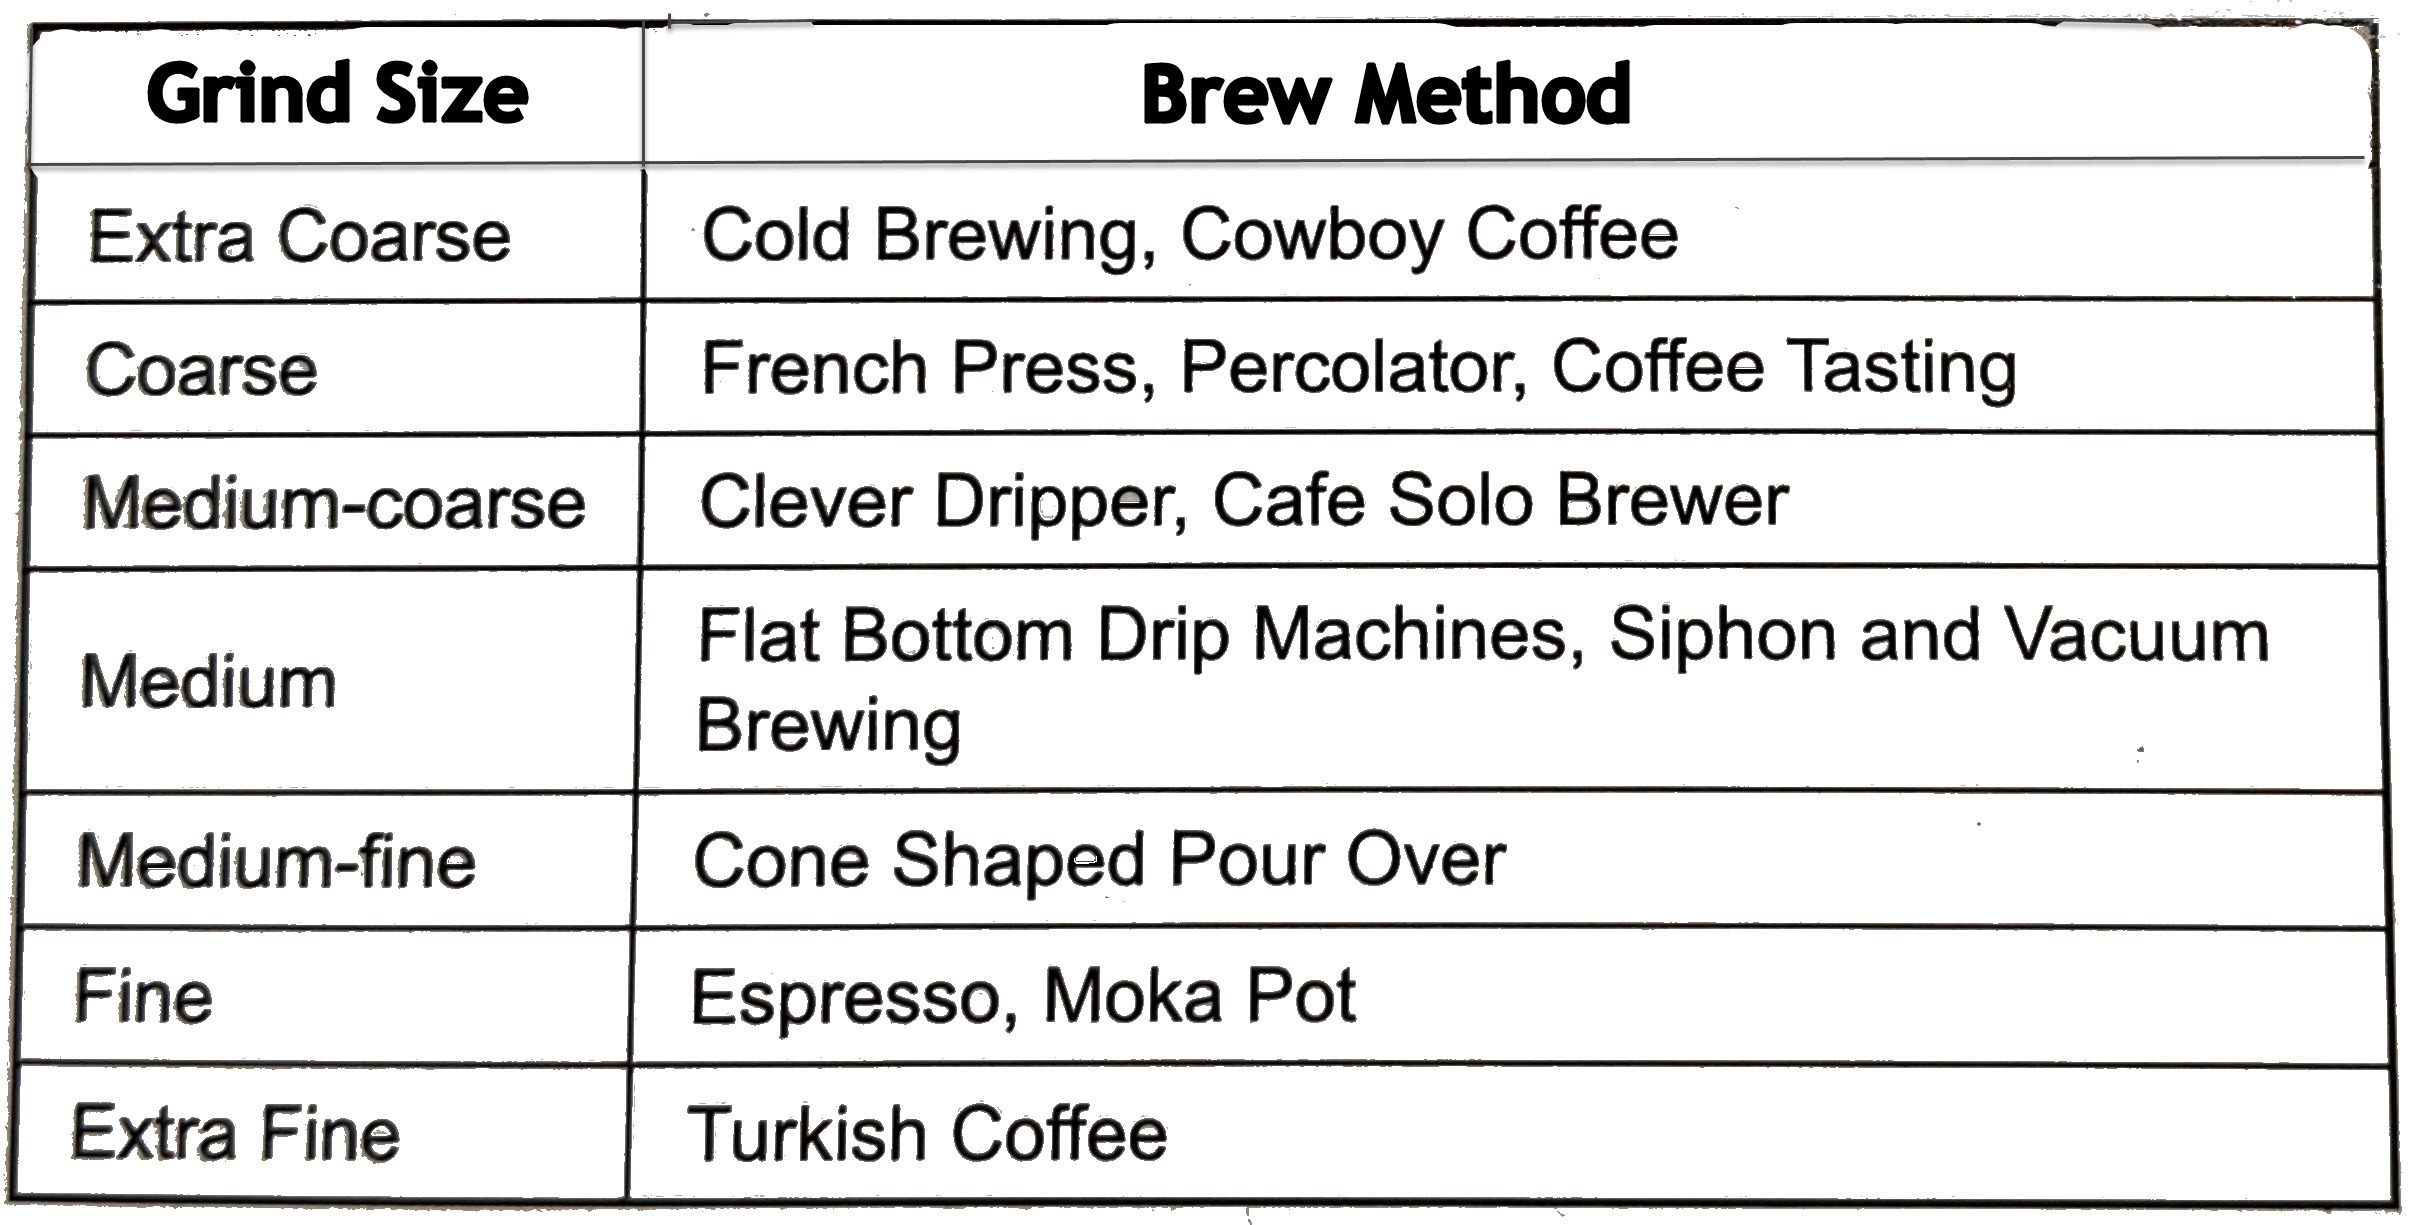 Grind Size vs Brew Method